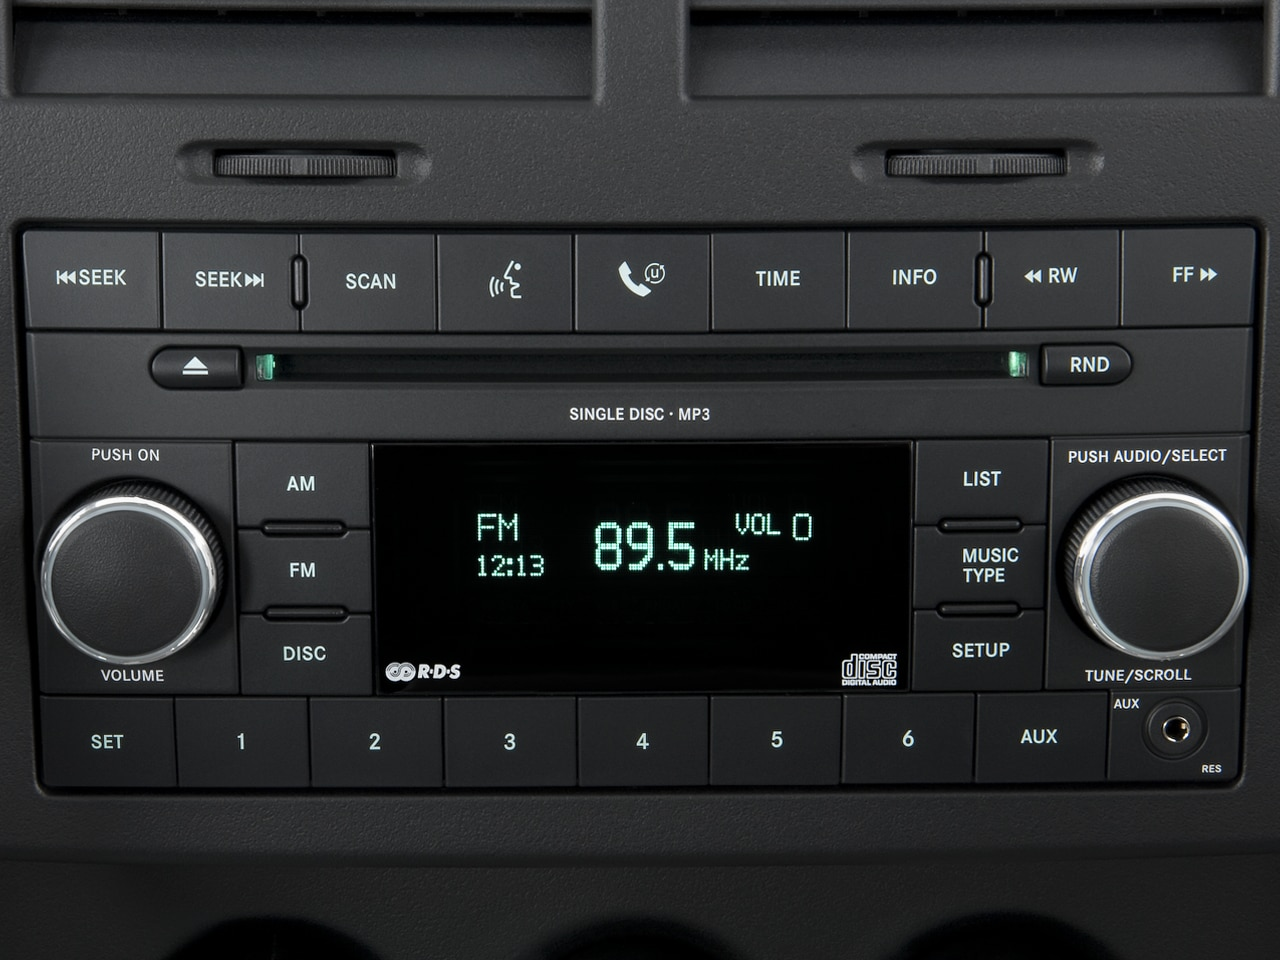 2012 jeep liberty radio manual